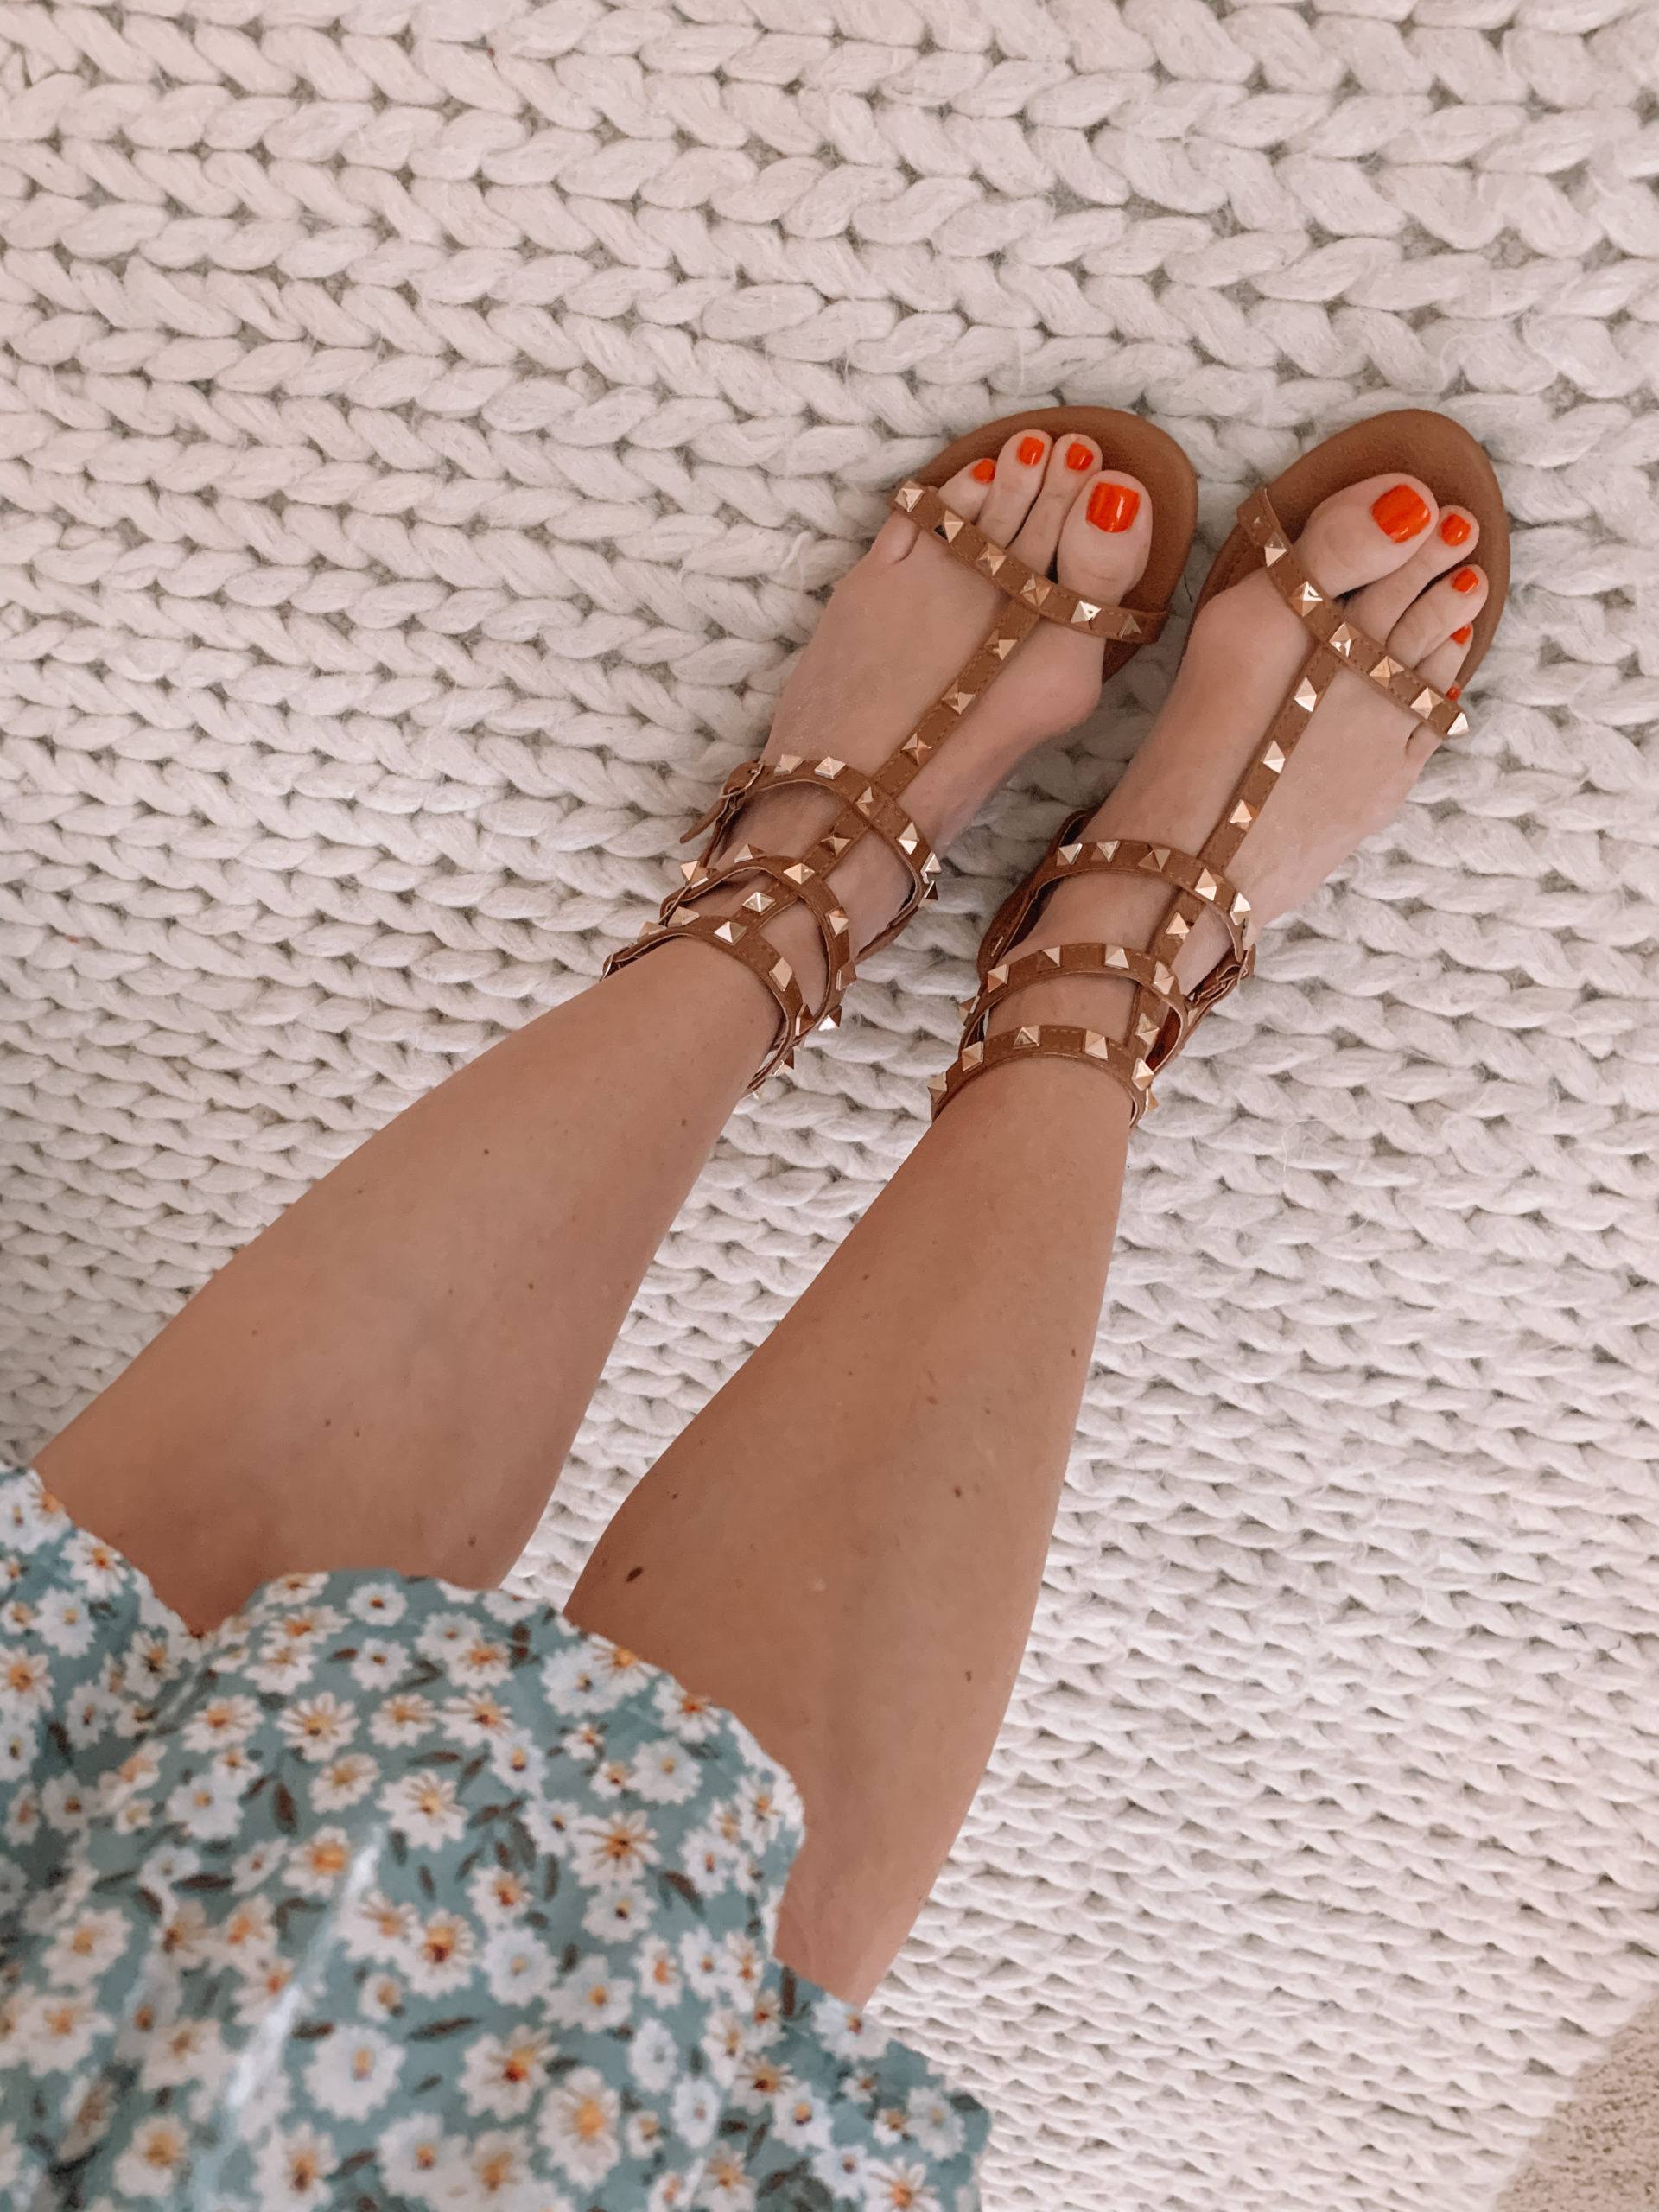 Amazon Fashion - Brown Studded Sandals